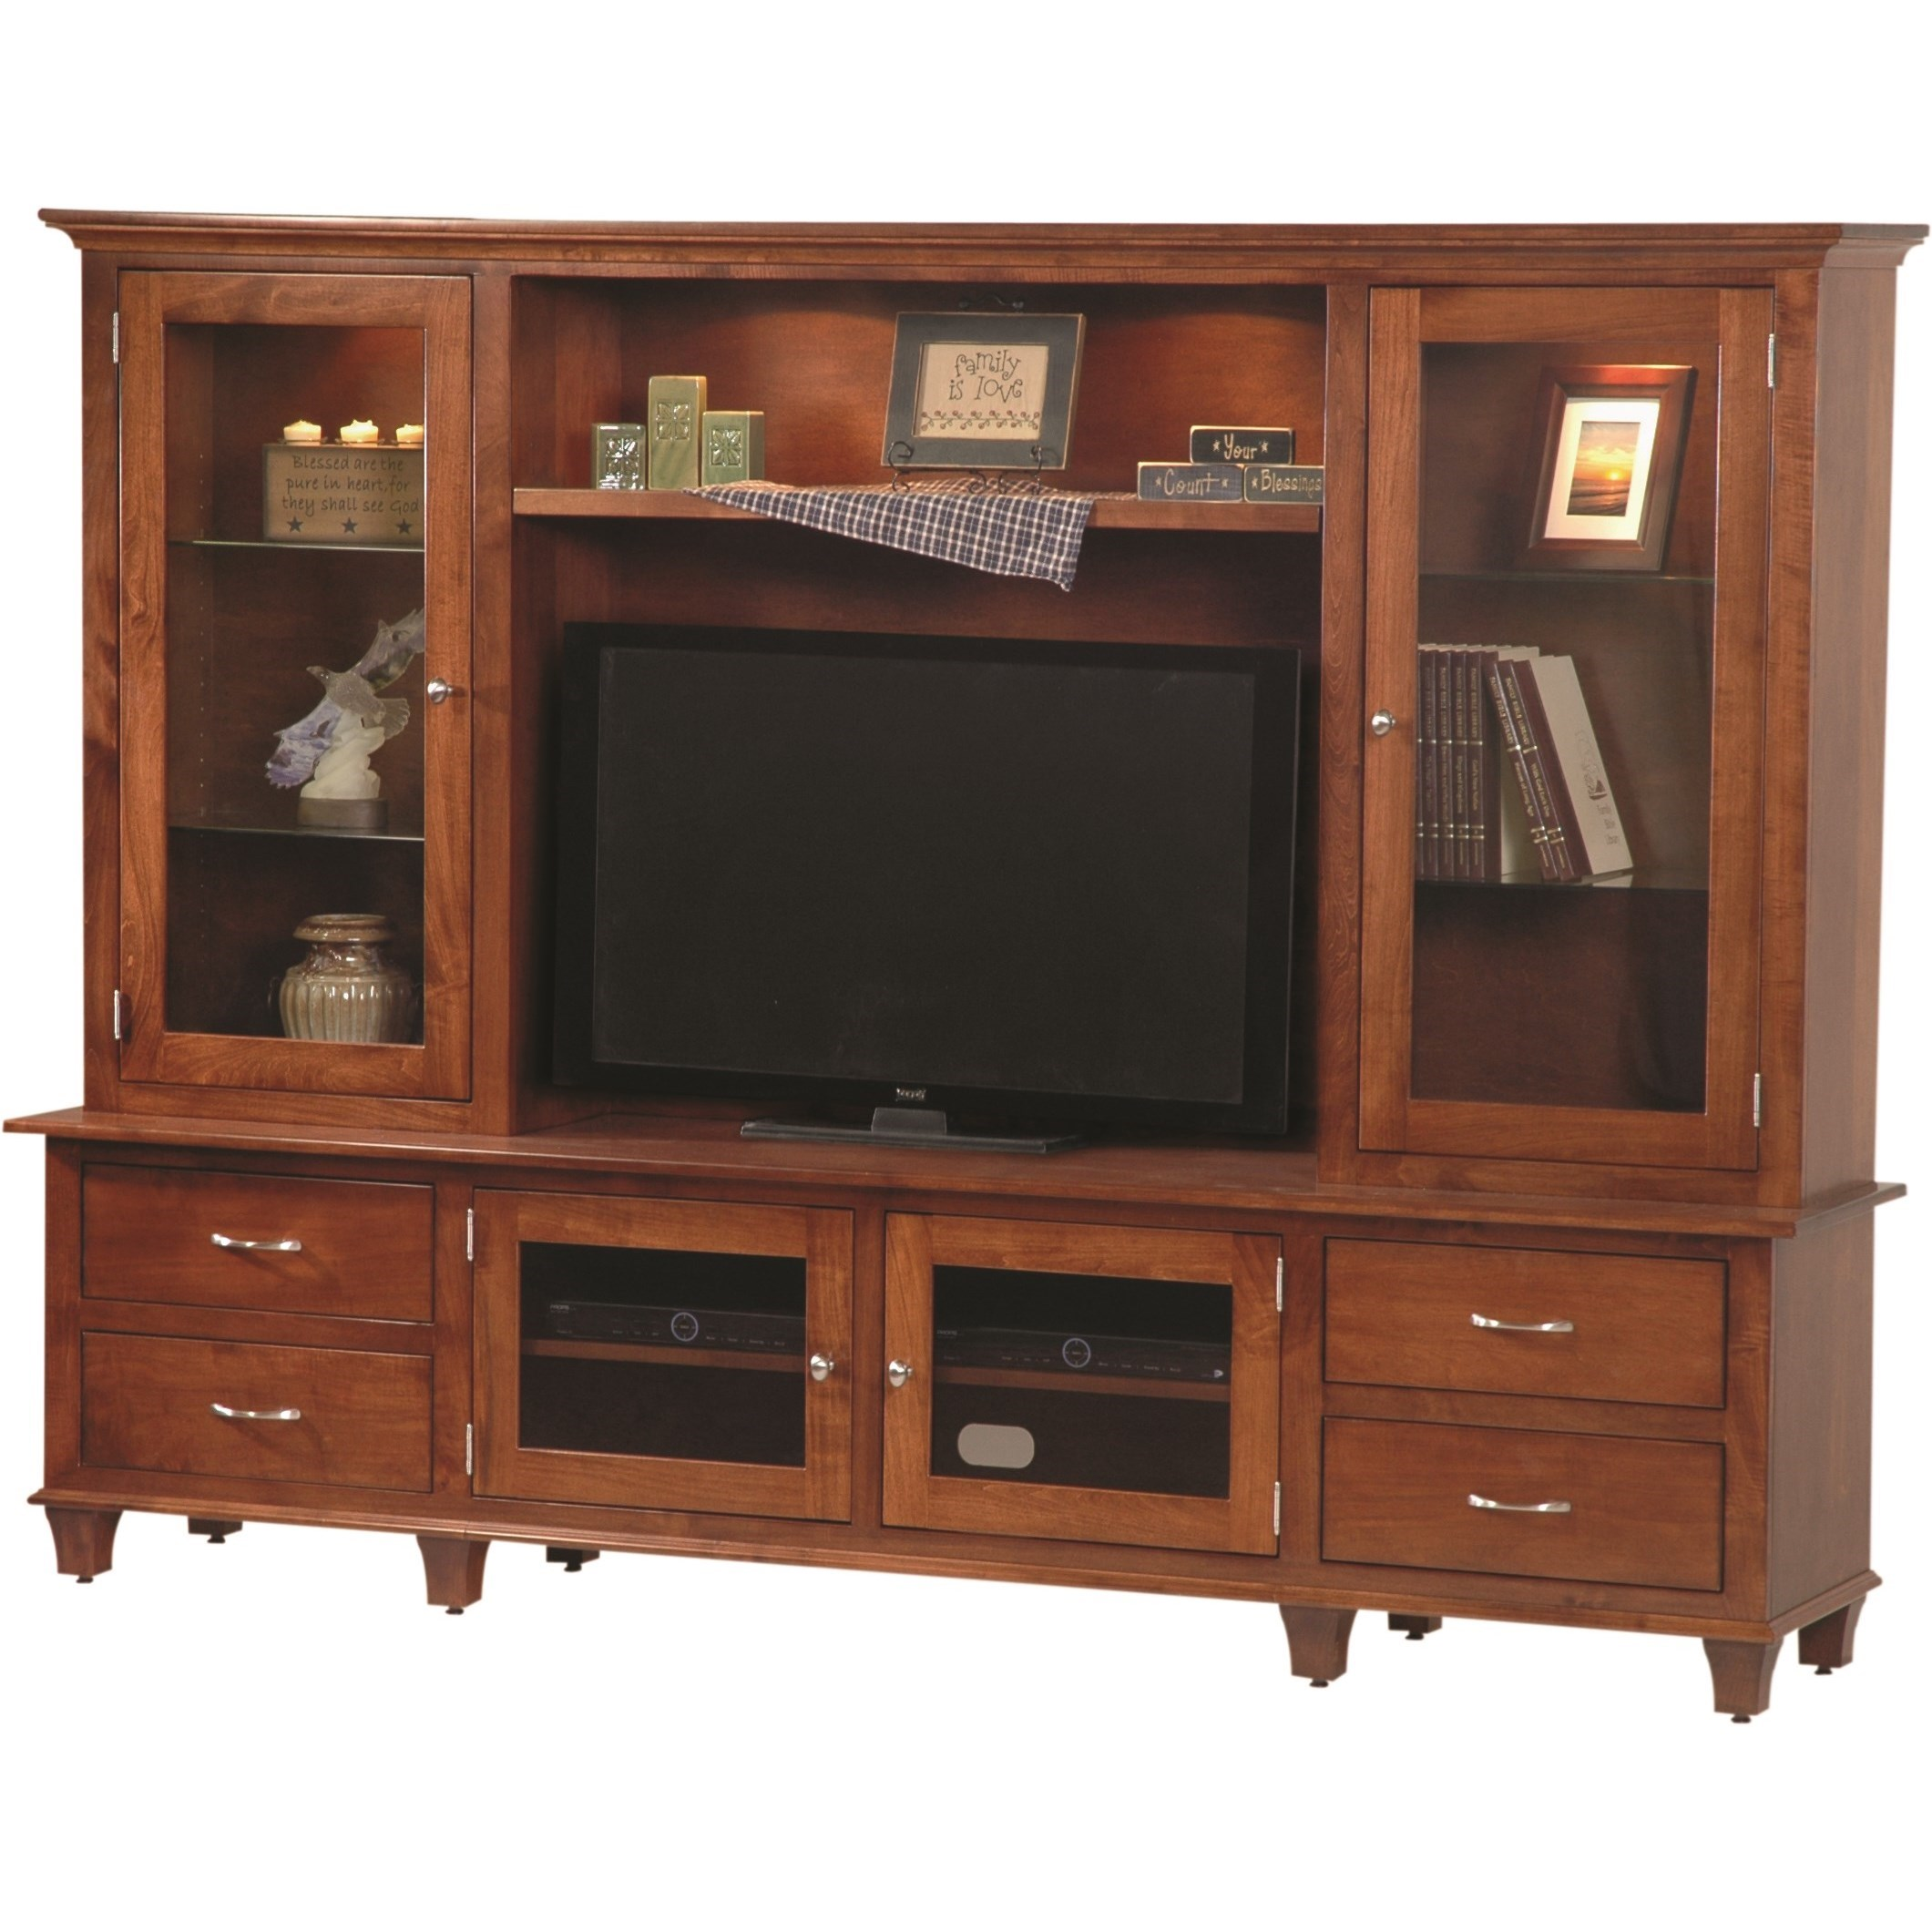 Entertainment Customizable Bourten Hutch Wall Unit by INTEG Wood Products at Saugerties Furniture Mart